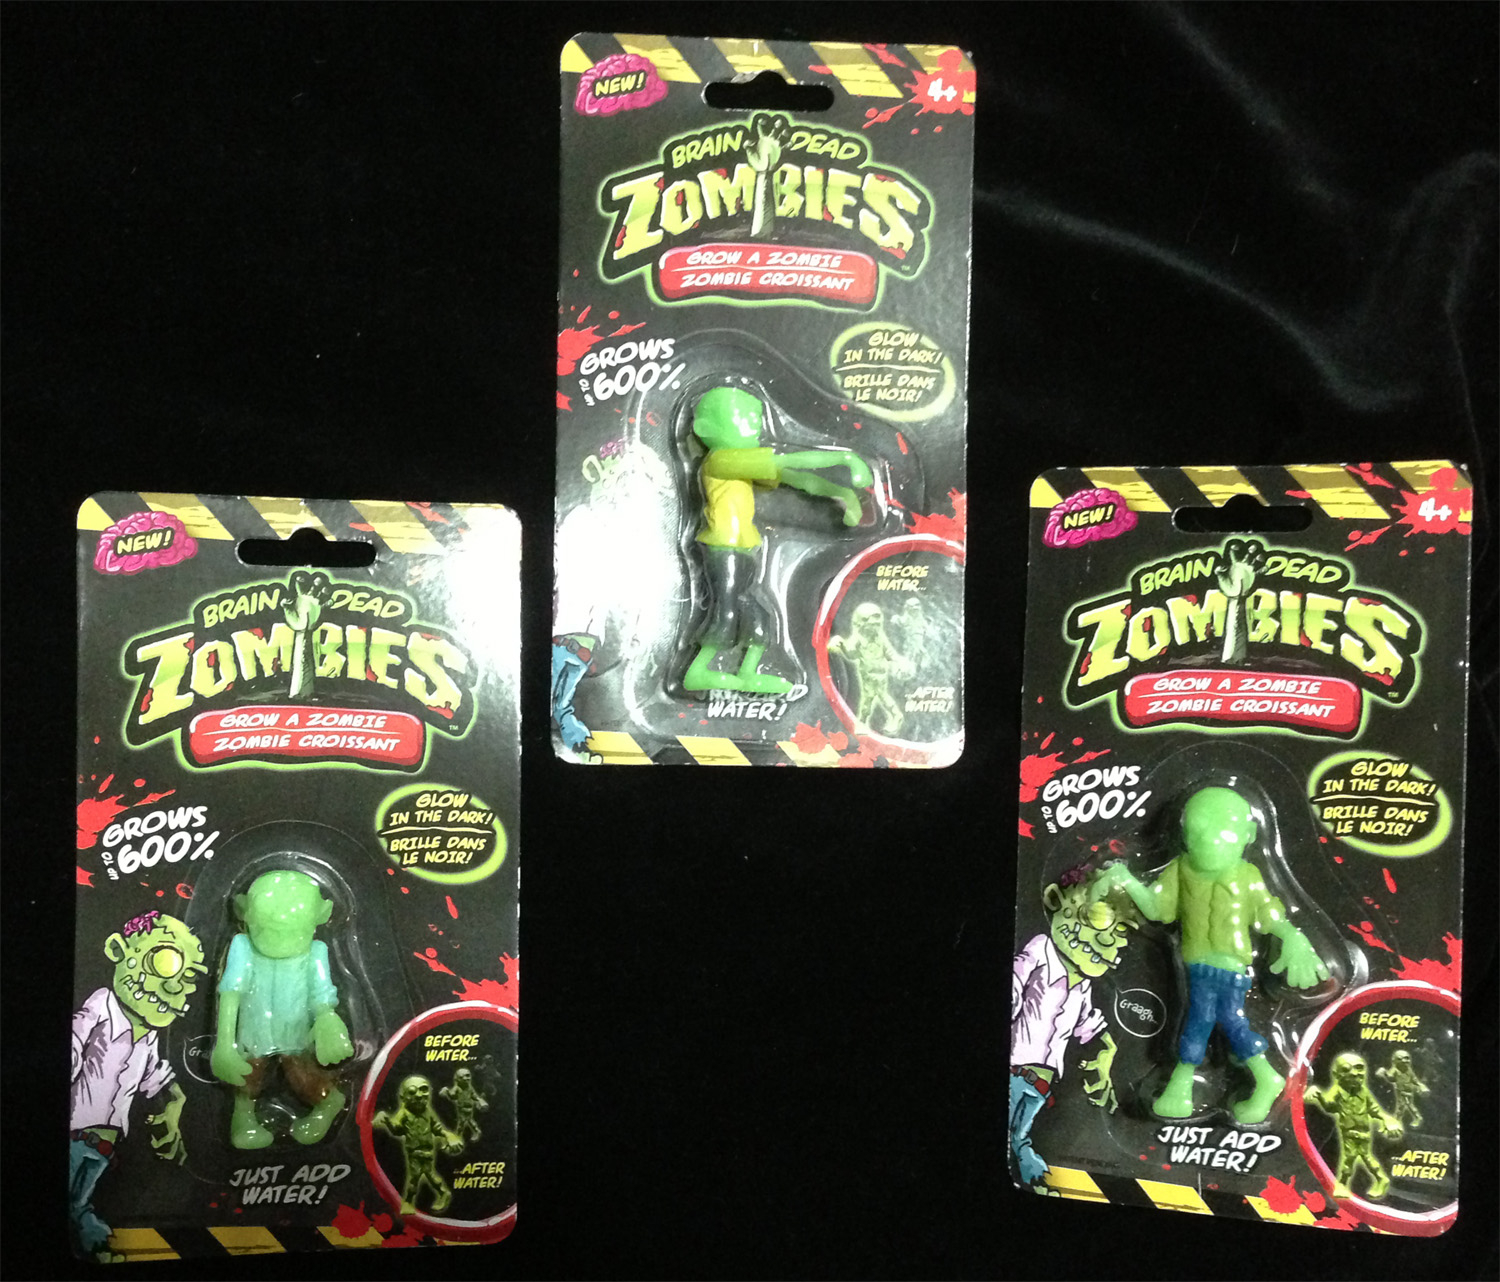 Zombie party ideas zombie party supplies 3 - Gag Gift Magic Growing Glow Zombies Figures Crew Set Of 3 Walking Dead Decoration Horror Mad